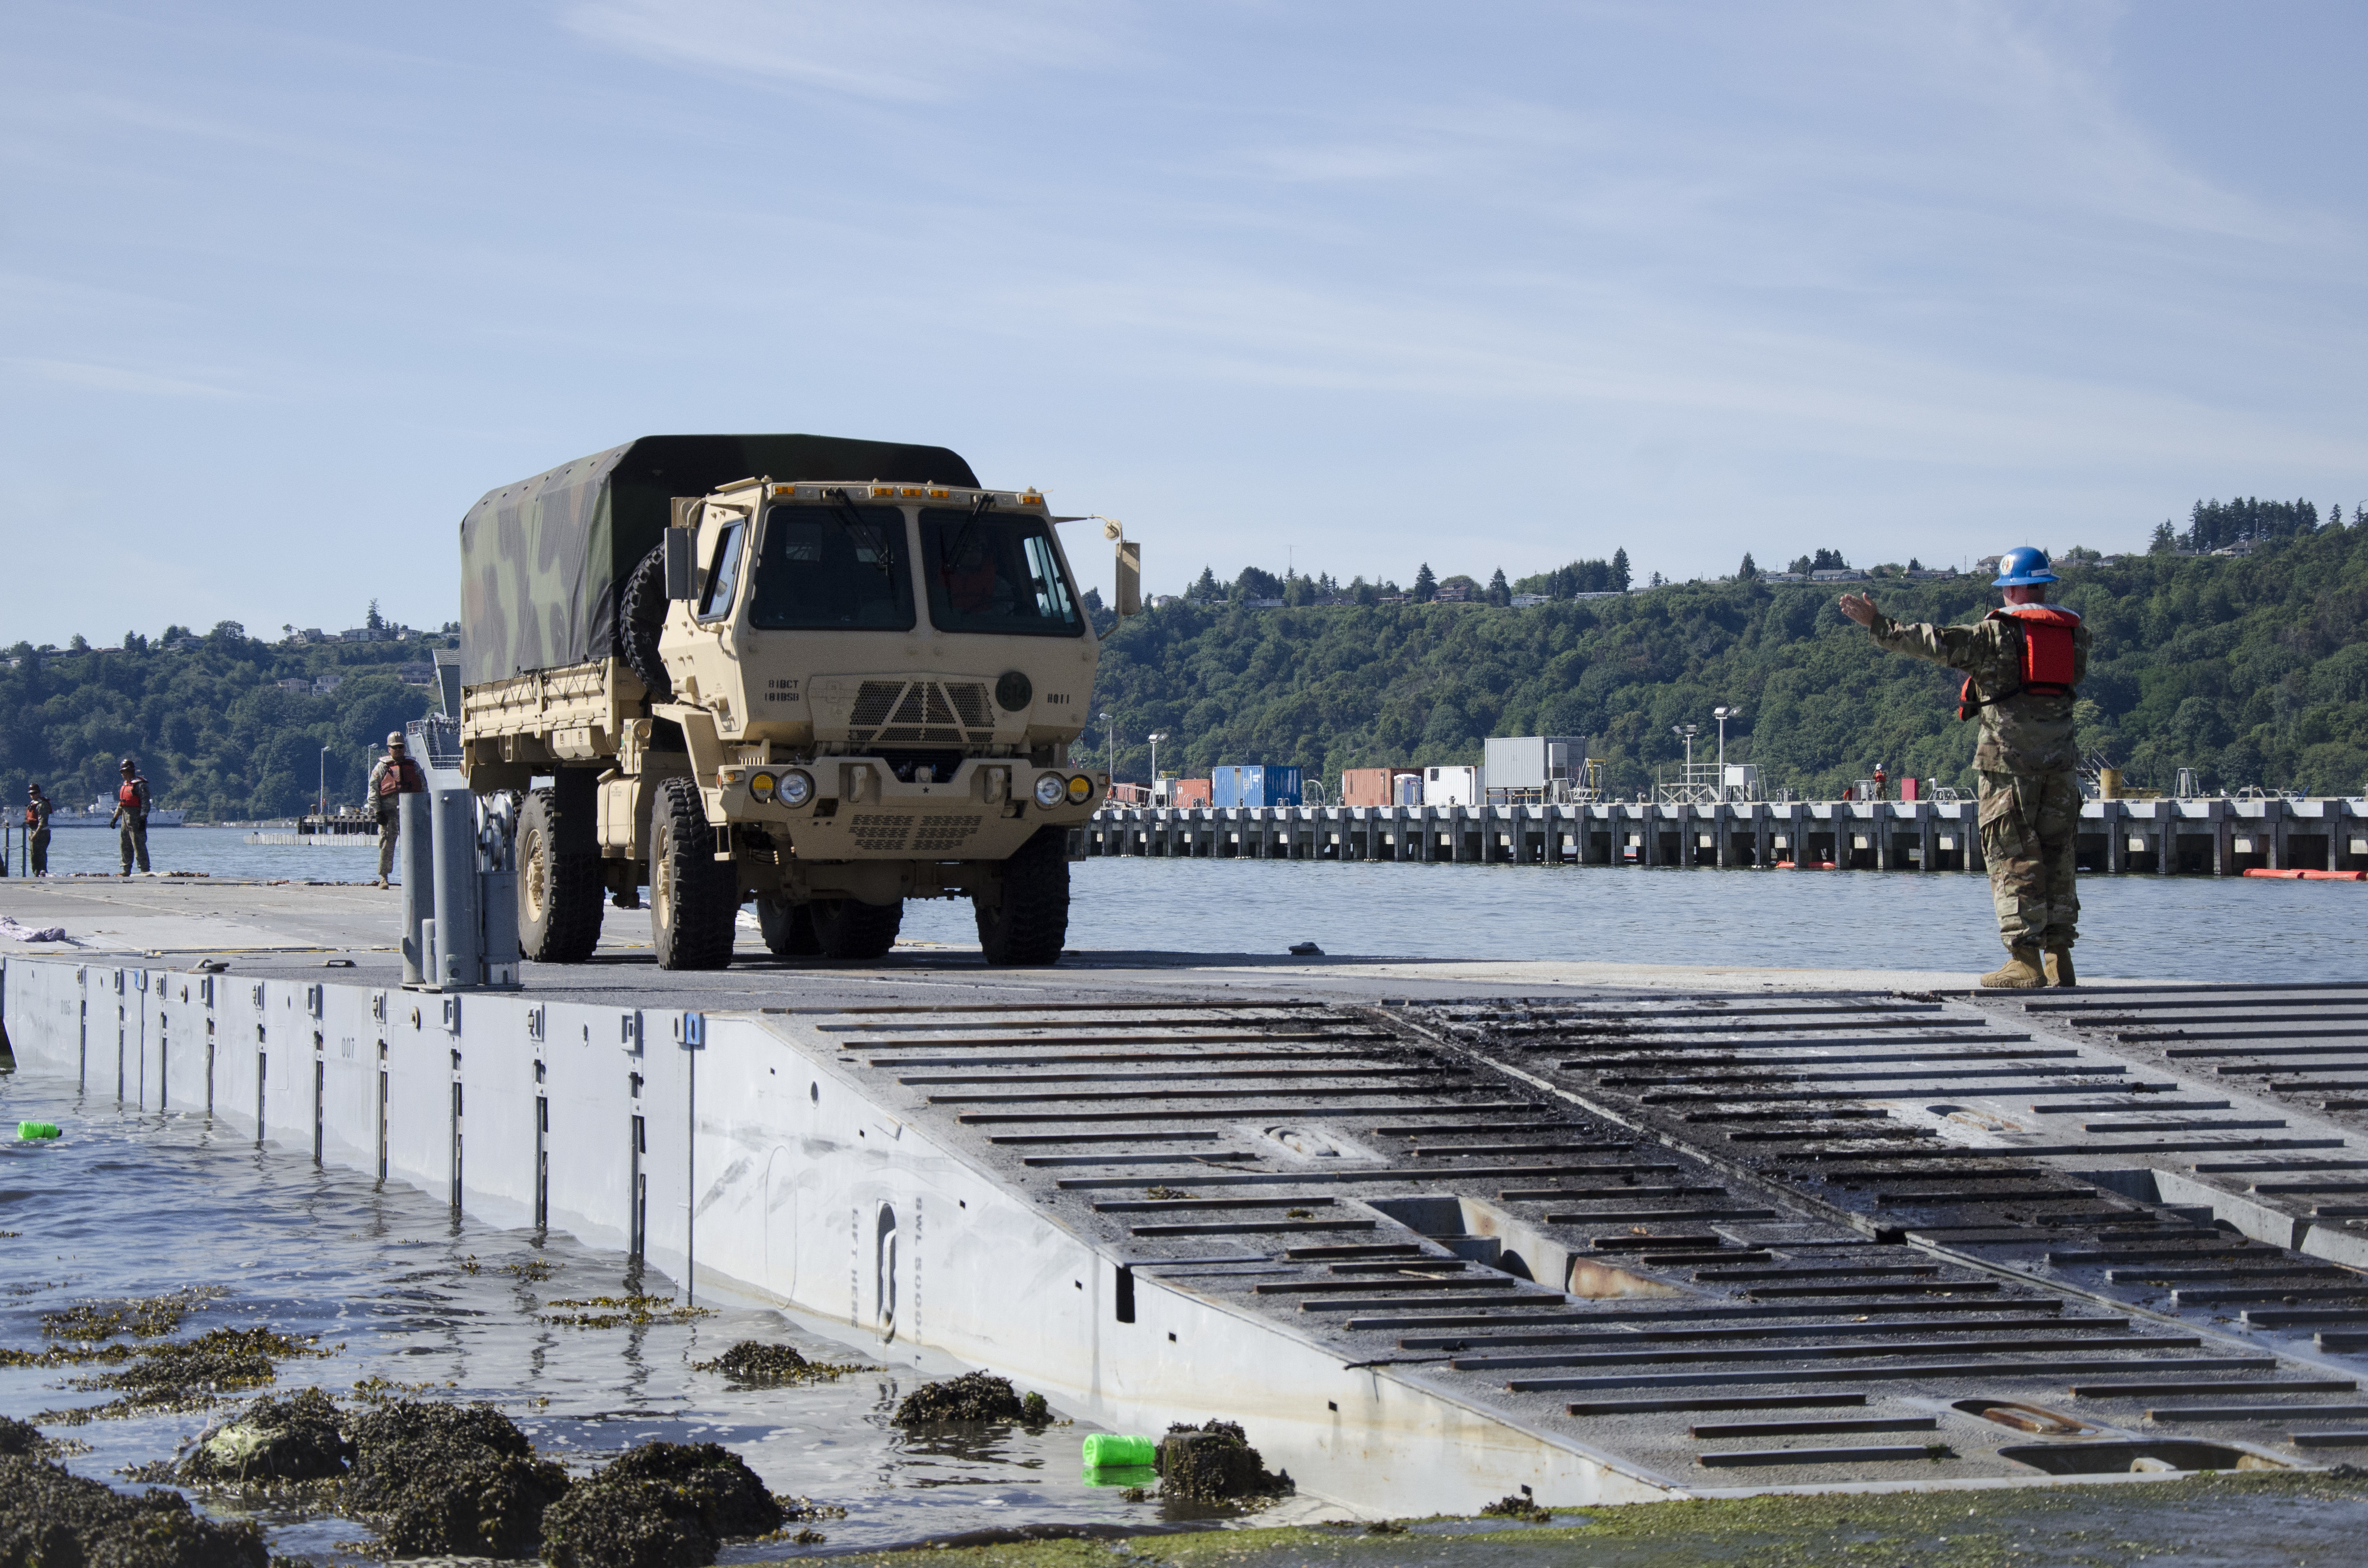 Soldiers from the Washington Army National Guard's 181st Brigade Support Battalion and US Army's 7th Transportation Brigade (Expeditionary) load trucks during a Joint Logistics Over the Shore (JLOTS) exercise at the Port of Tacoma in support of Cascadia Rising 2016 on June 5, 2016. Cascadia Rising 2016 is a full-scale exercise involving over 100 federal, state, county and city agencies designed to test the state's earthquake plan in the event of a Cascadia Subduction Zone event. (U.S. Army National Guard photo by Sgt. Michael Tietjen)